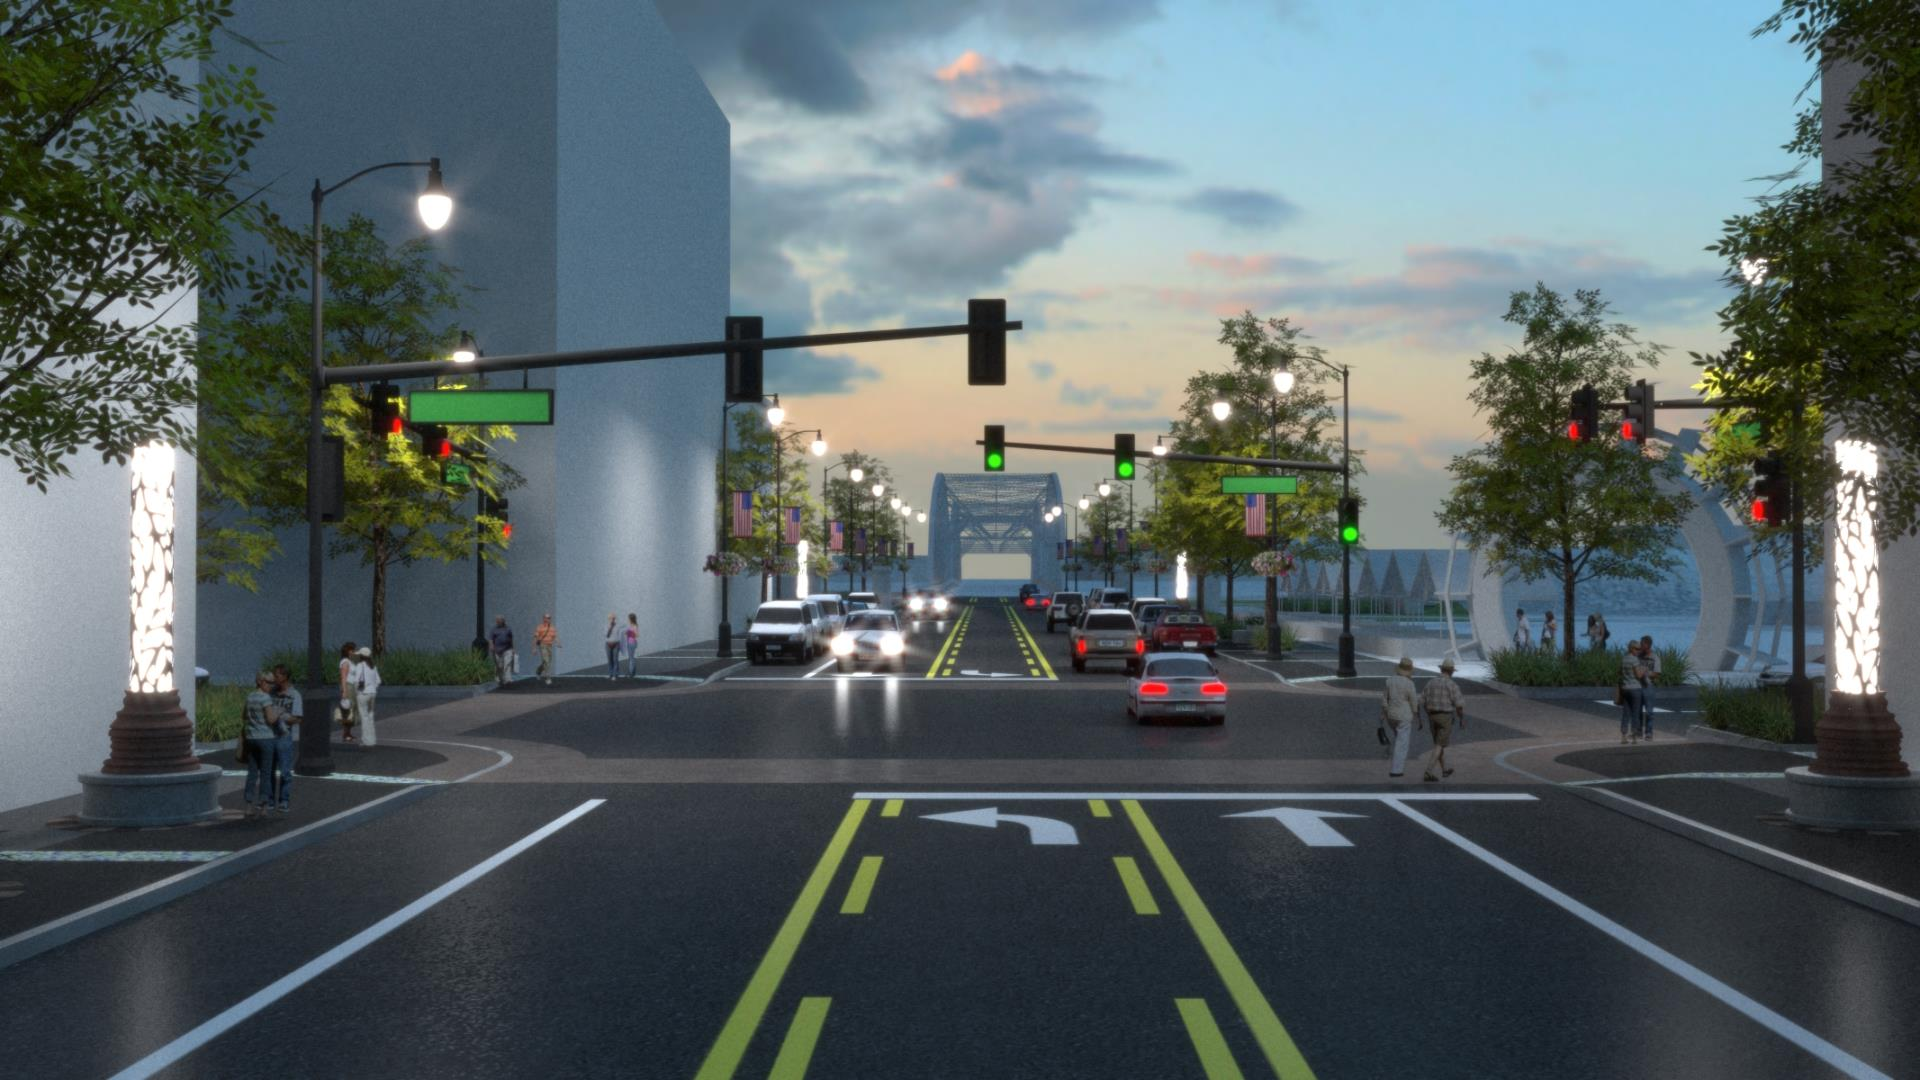 Demers Ave. Rendering